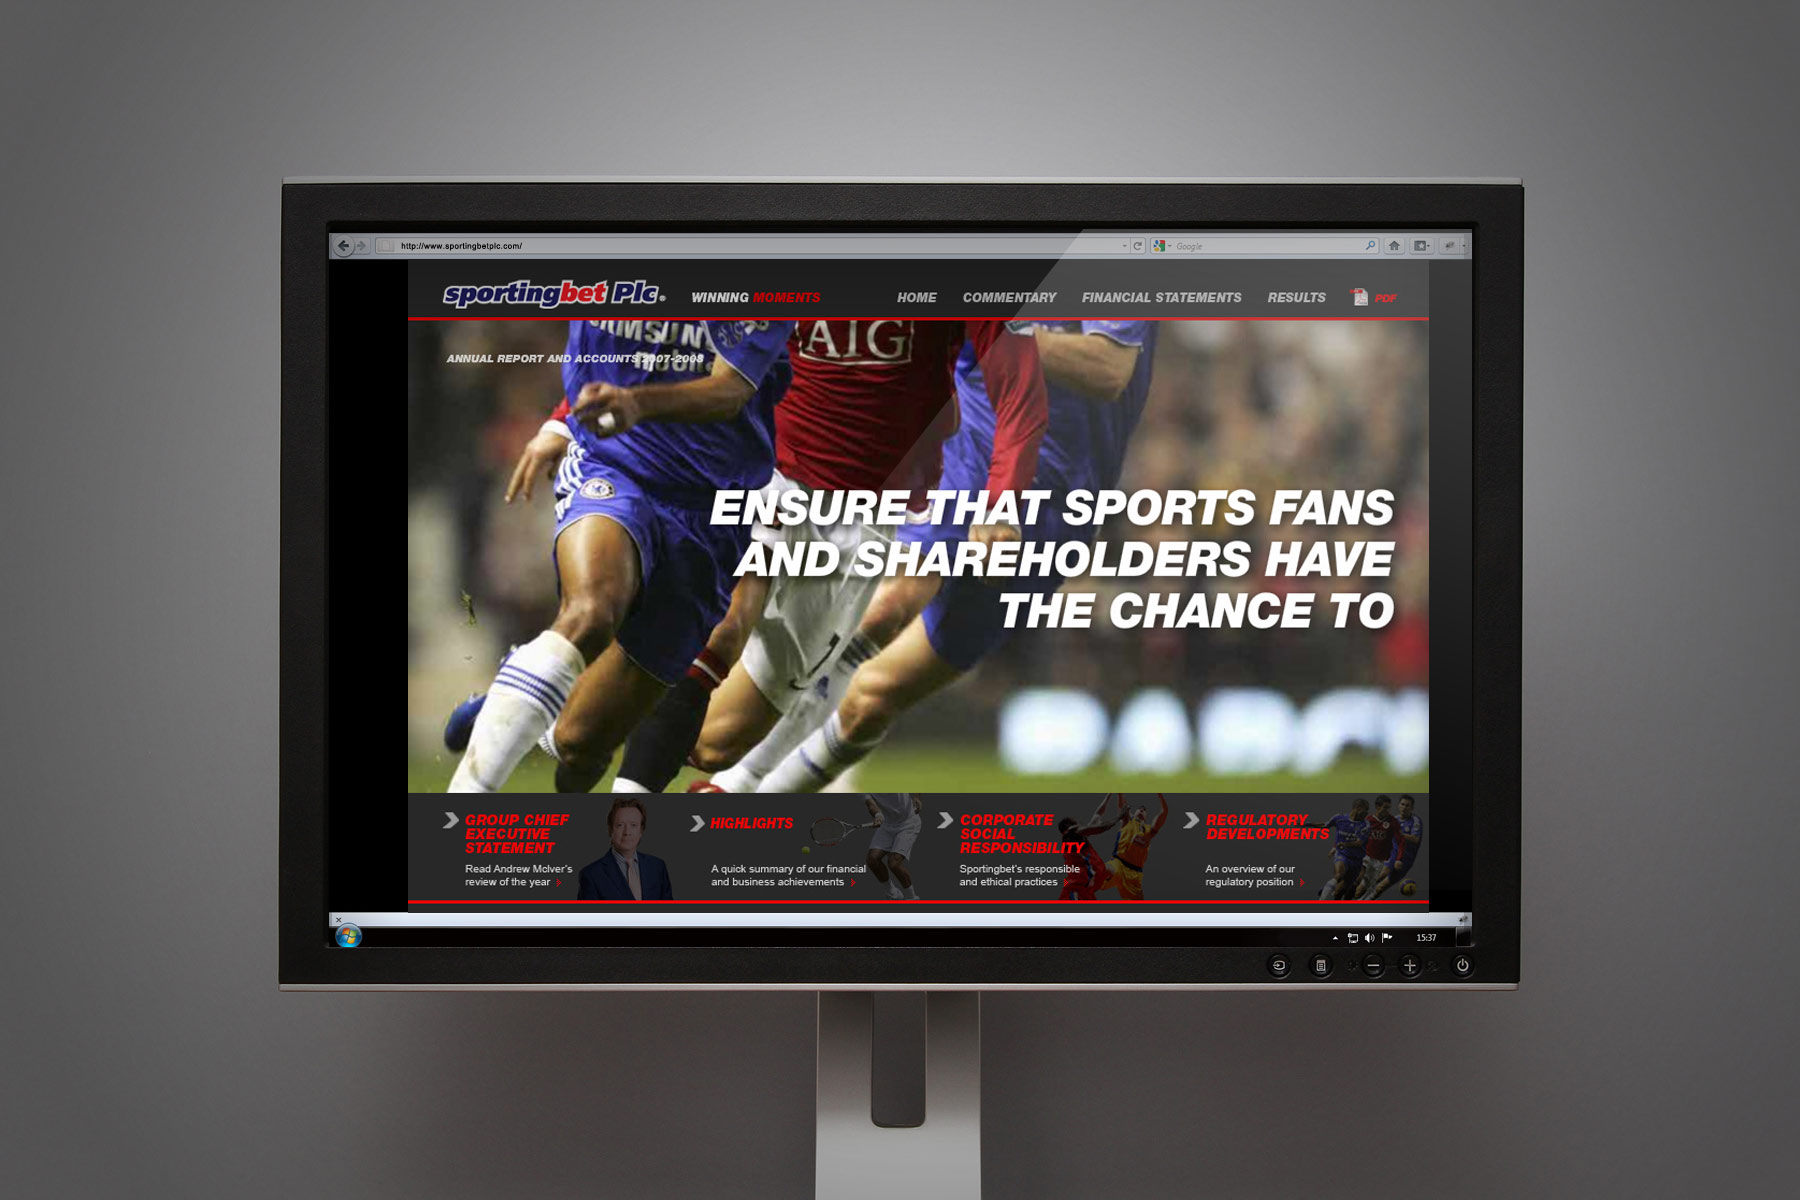 We used the combination of key statements along powerful sporting imagery.